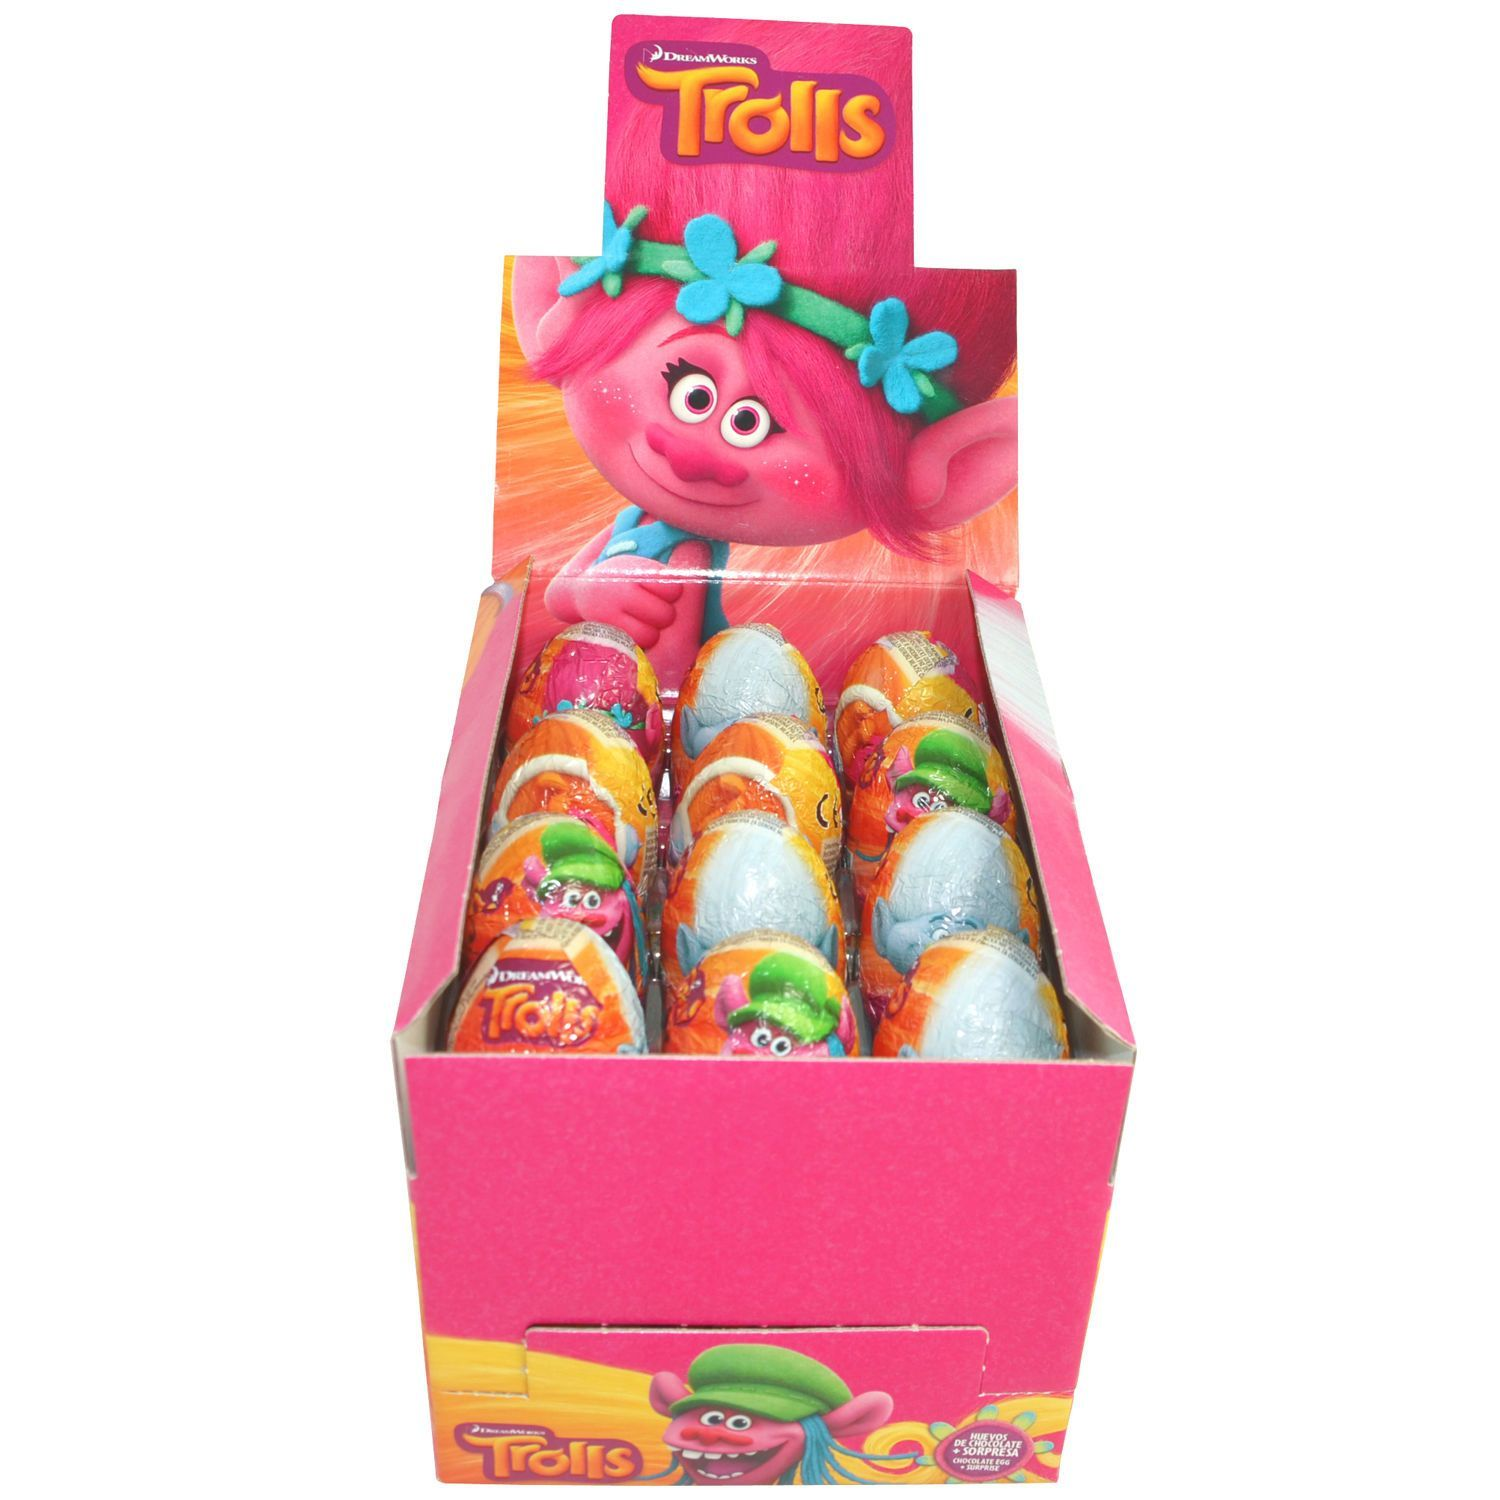 Chocolate Surprise Eggs TROLLS with theme related toys inside ...